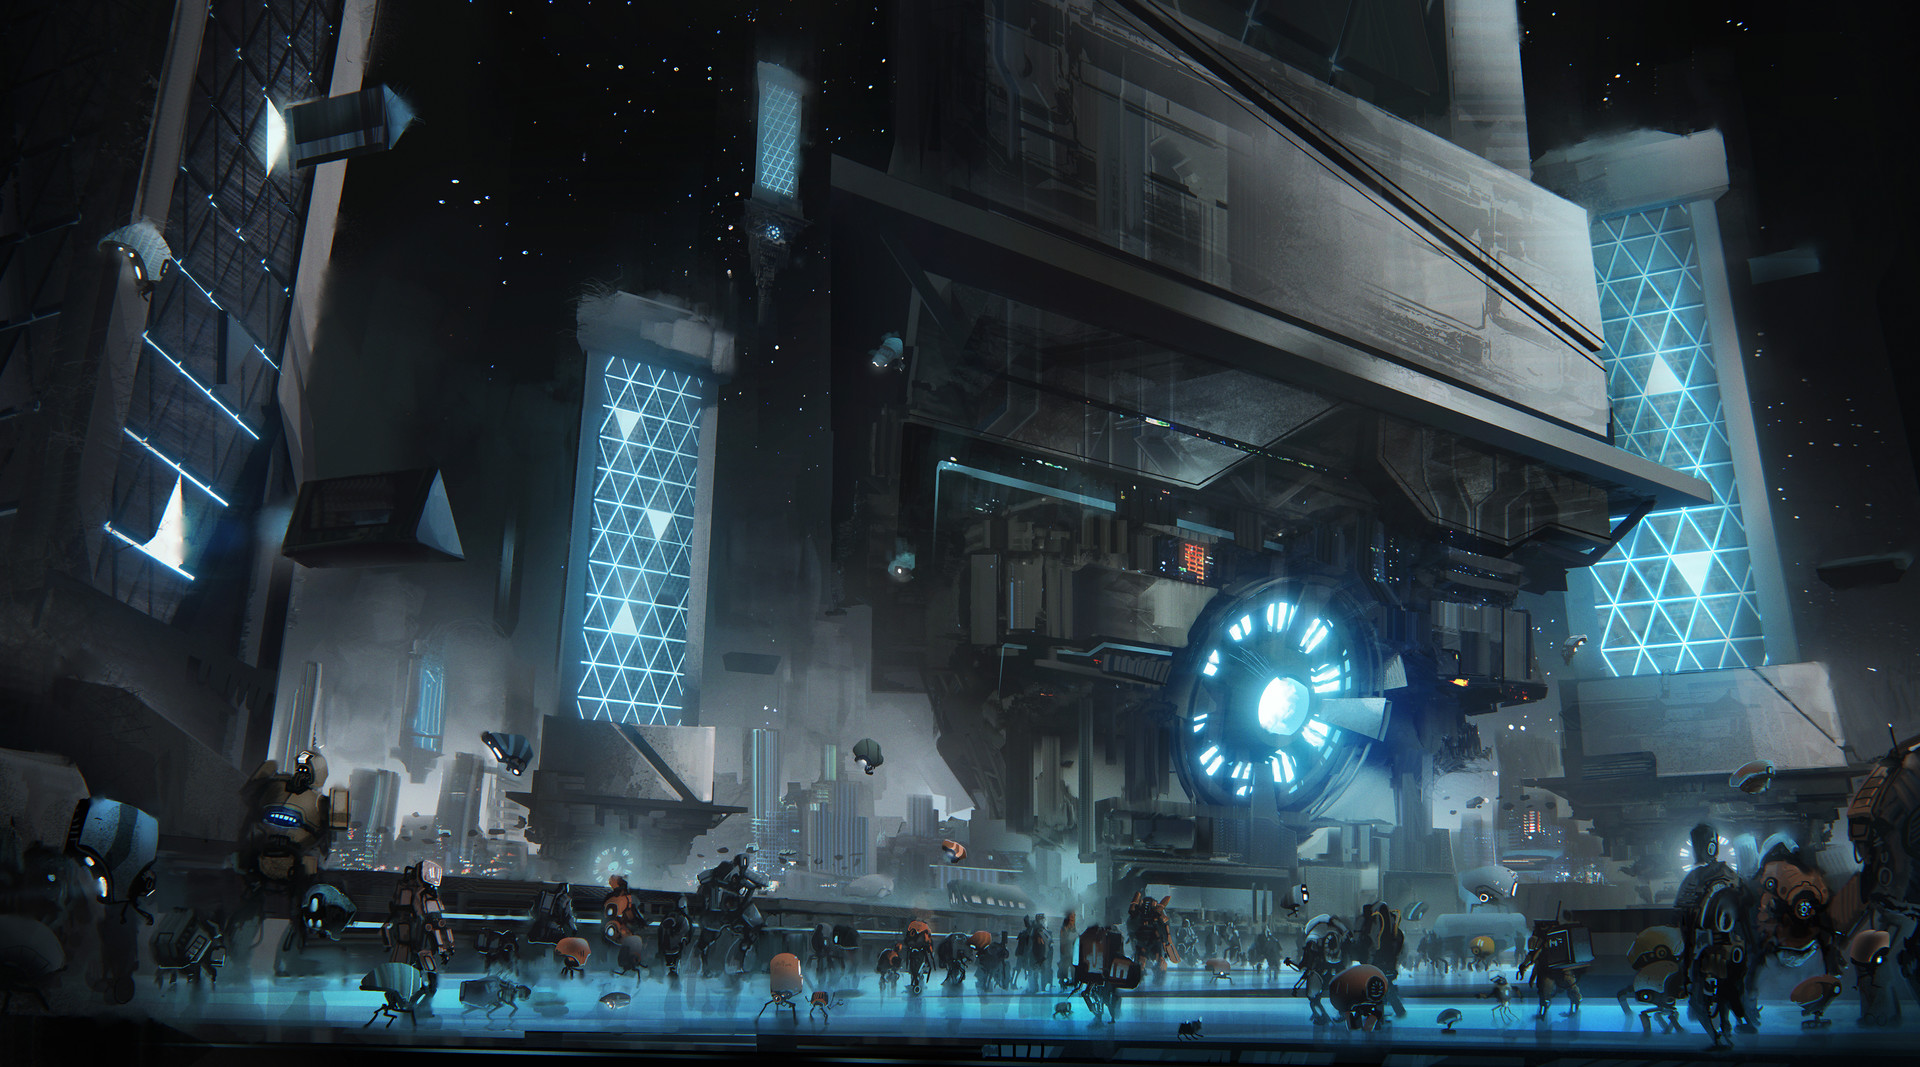 The Super Impressive Sci-Fi Art of Leon Tukker